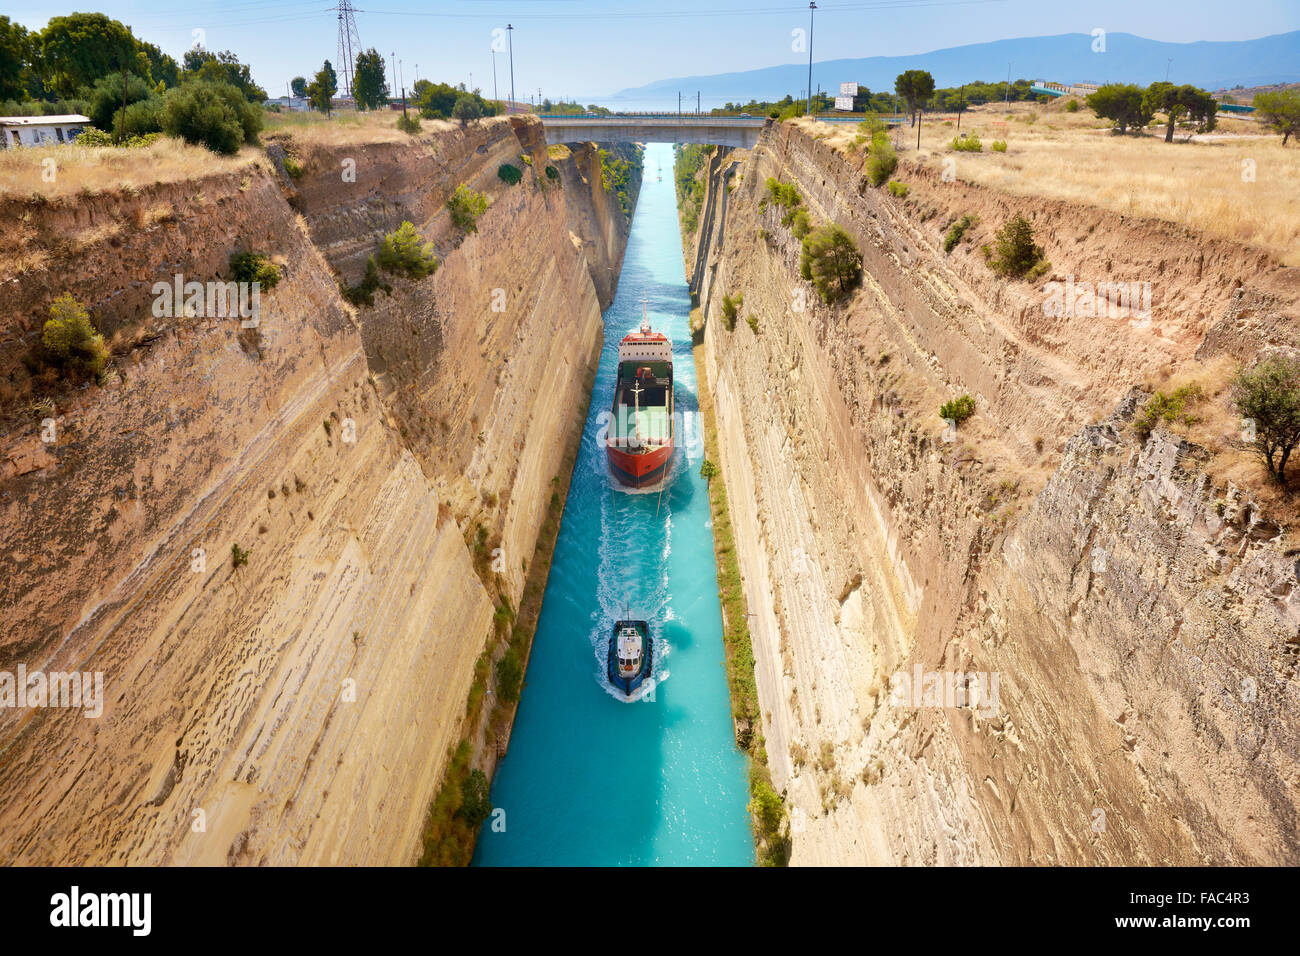 Corinth - Boat in the canal of Corinth, Peloponnese, Greece - Stock Image